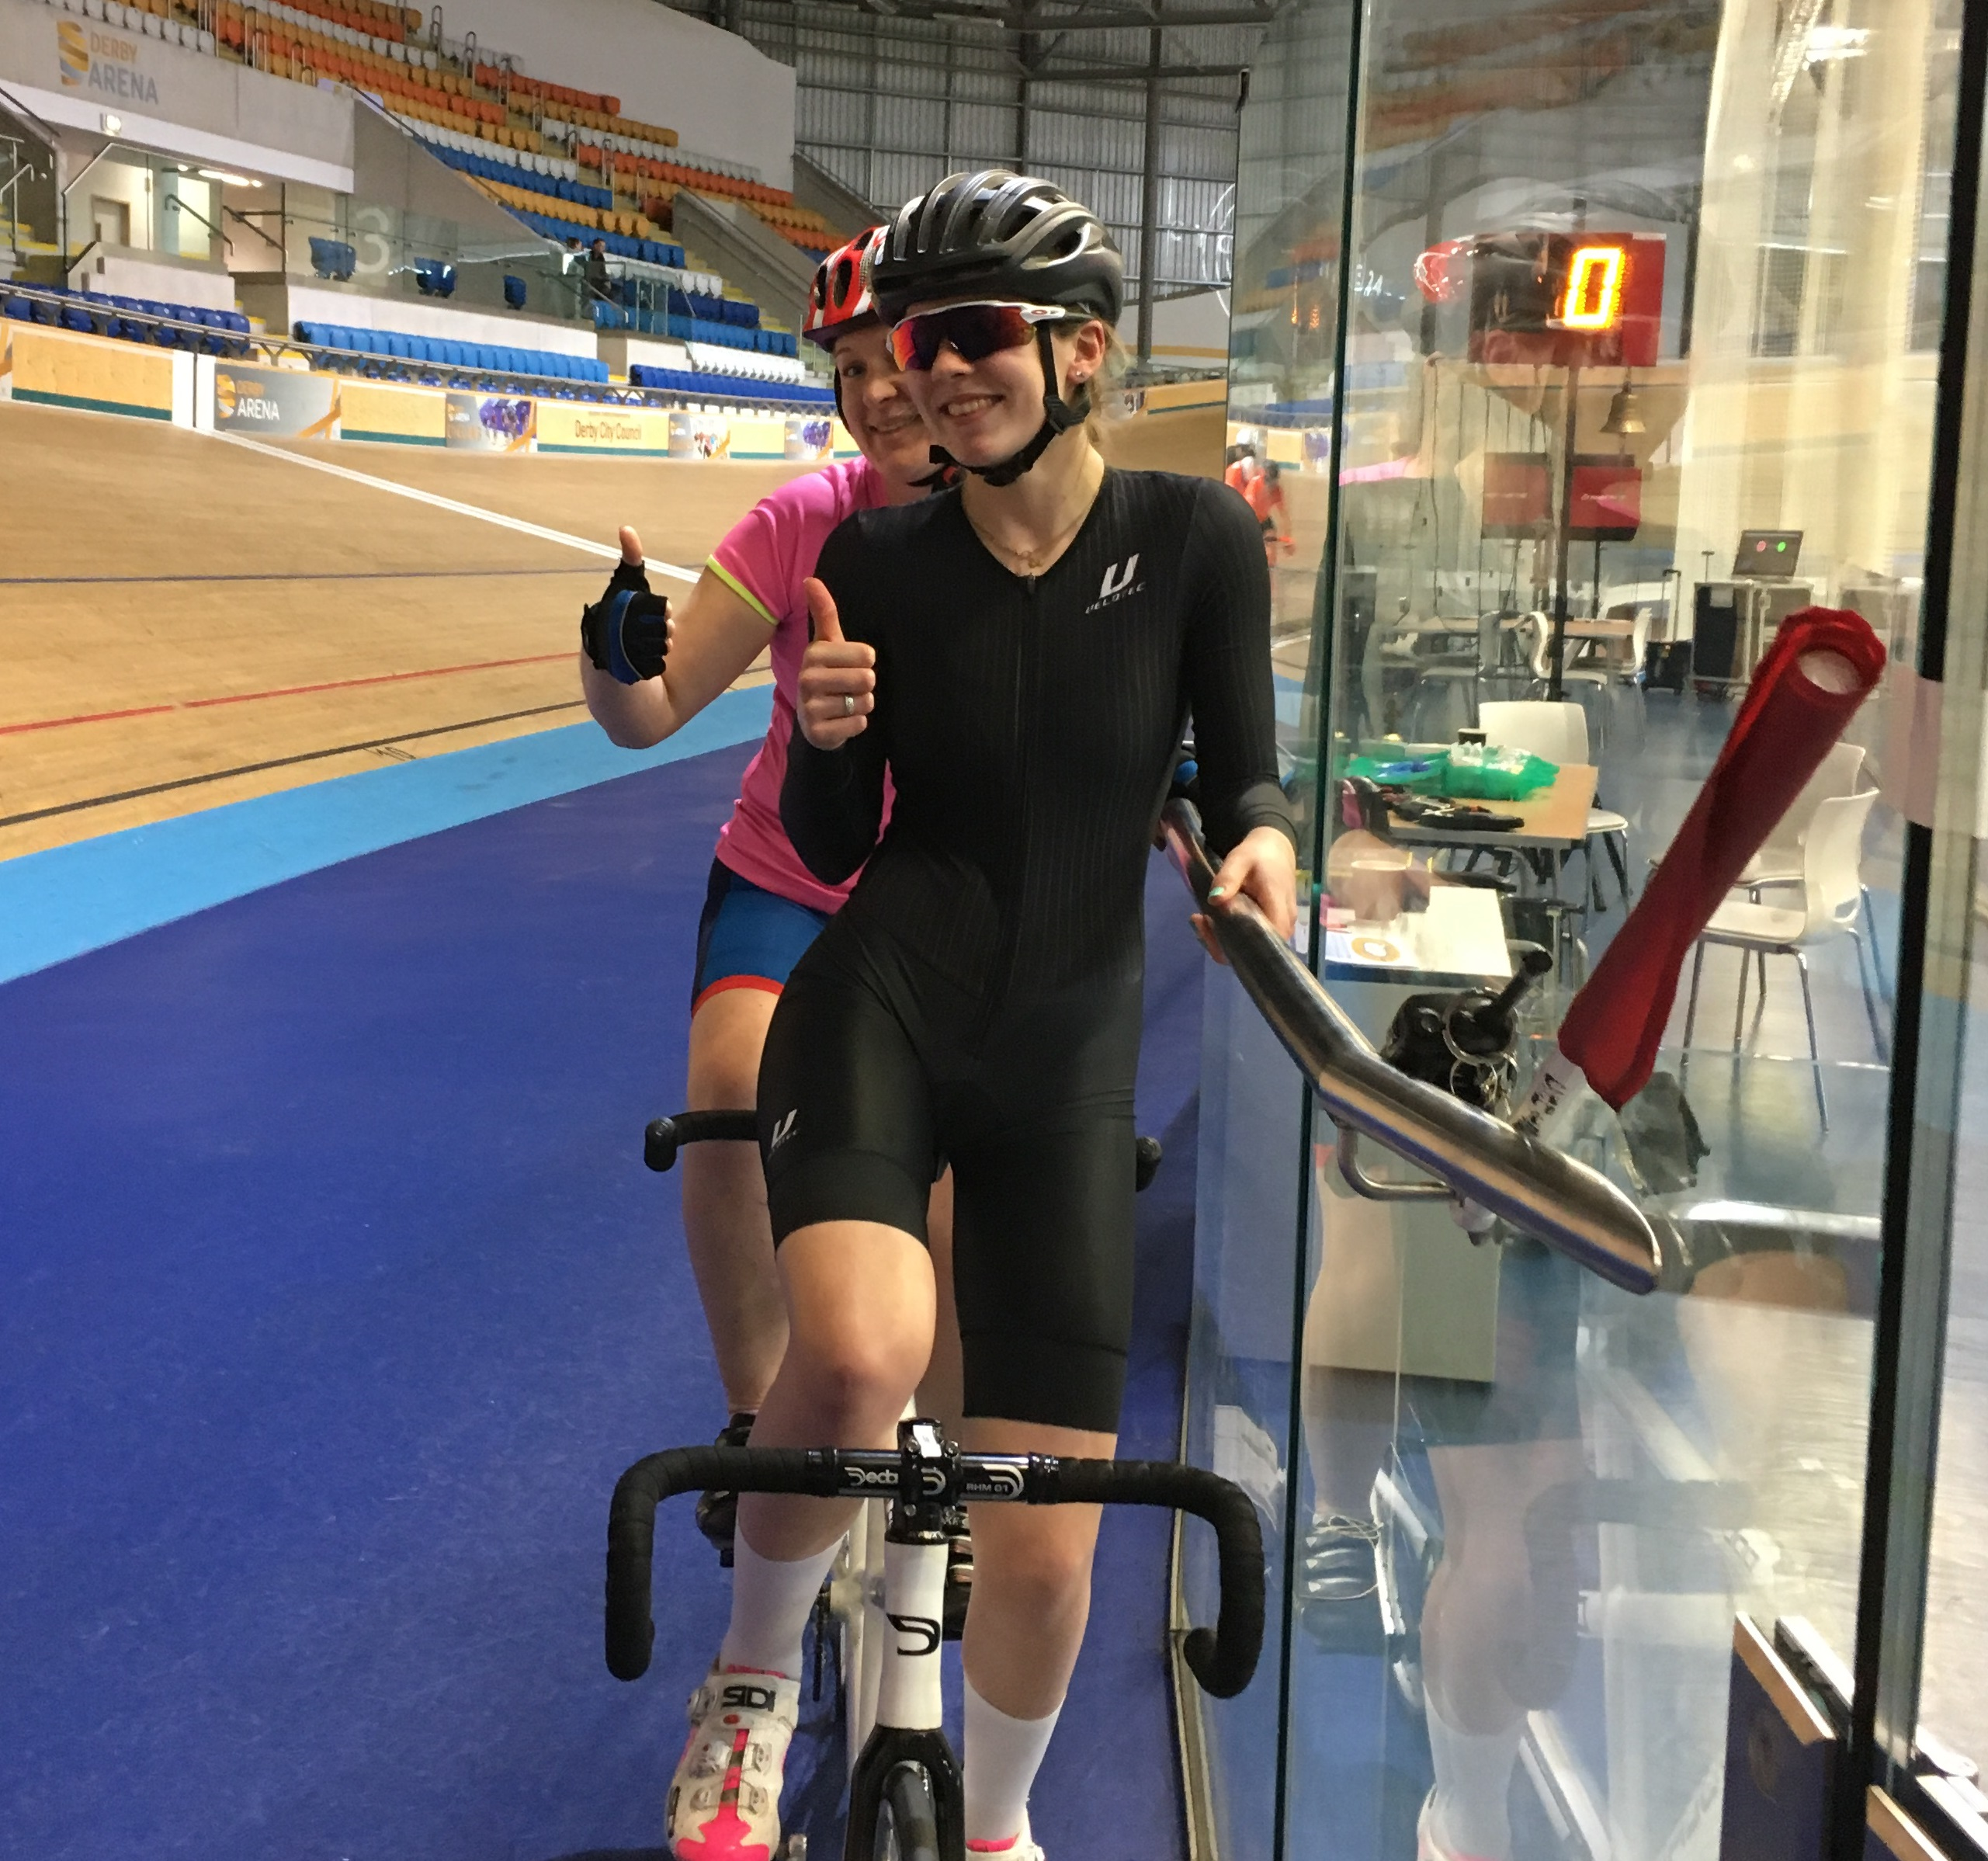 Image showing ladies cycling for Velodrome challenge